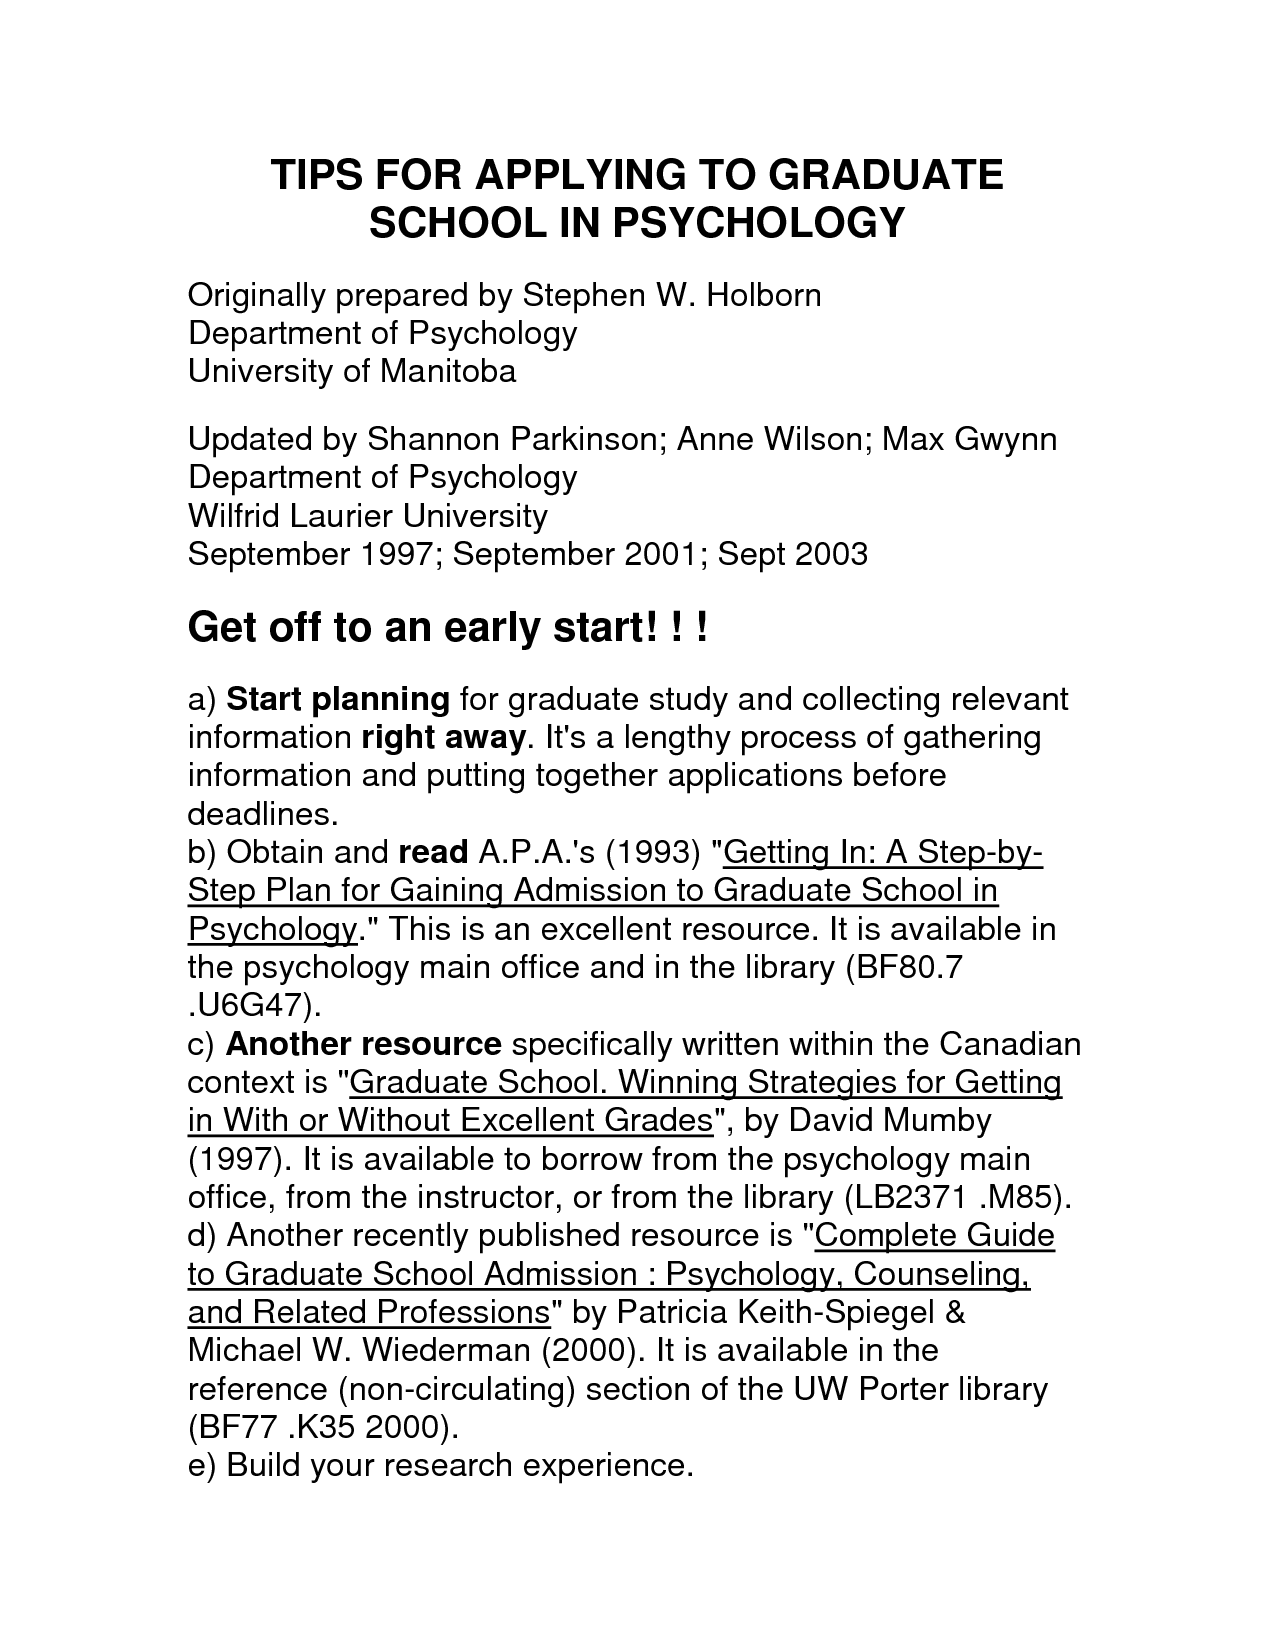 Recent College Graduate Resume Psychology Graduate School Resume  Httpwwwresumecareer